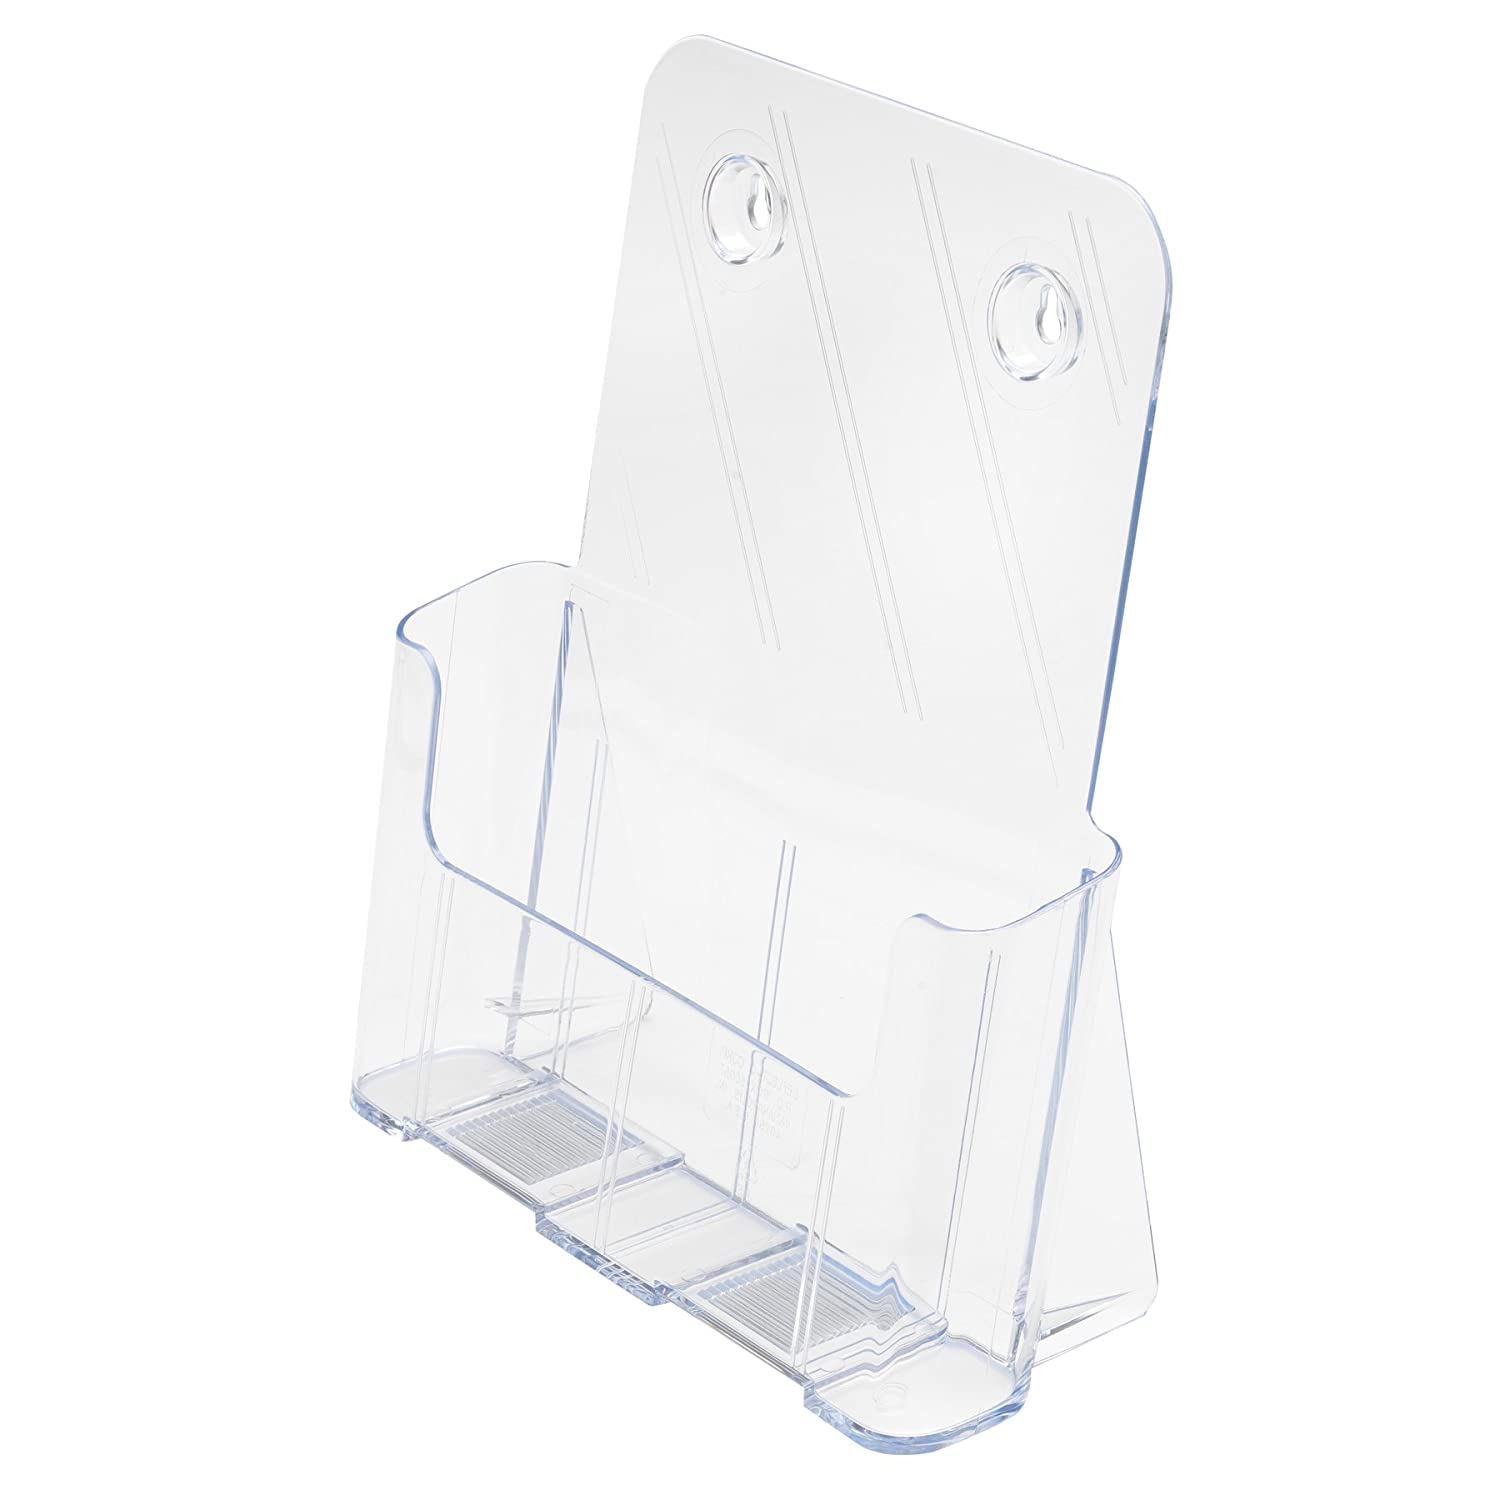 deflect-o 77301 Three-tier multi-compartment large size docuholder, 9-1/2wx8dx12-5/8h, clear DEFLECTO CORPORATION DF77301